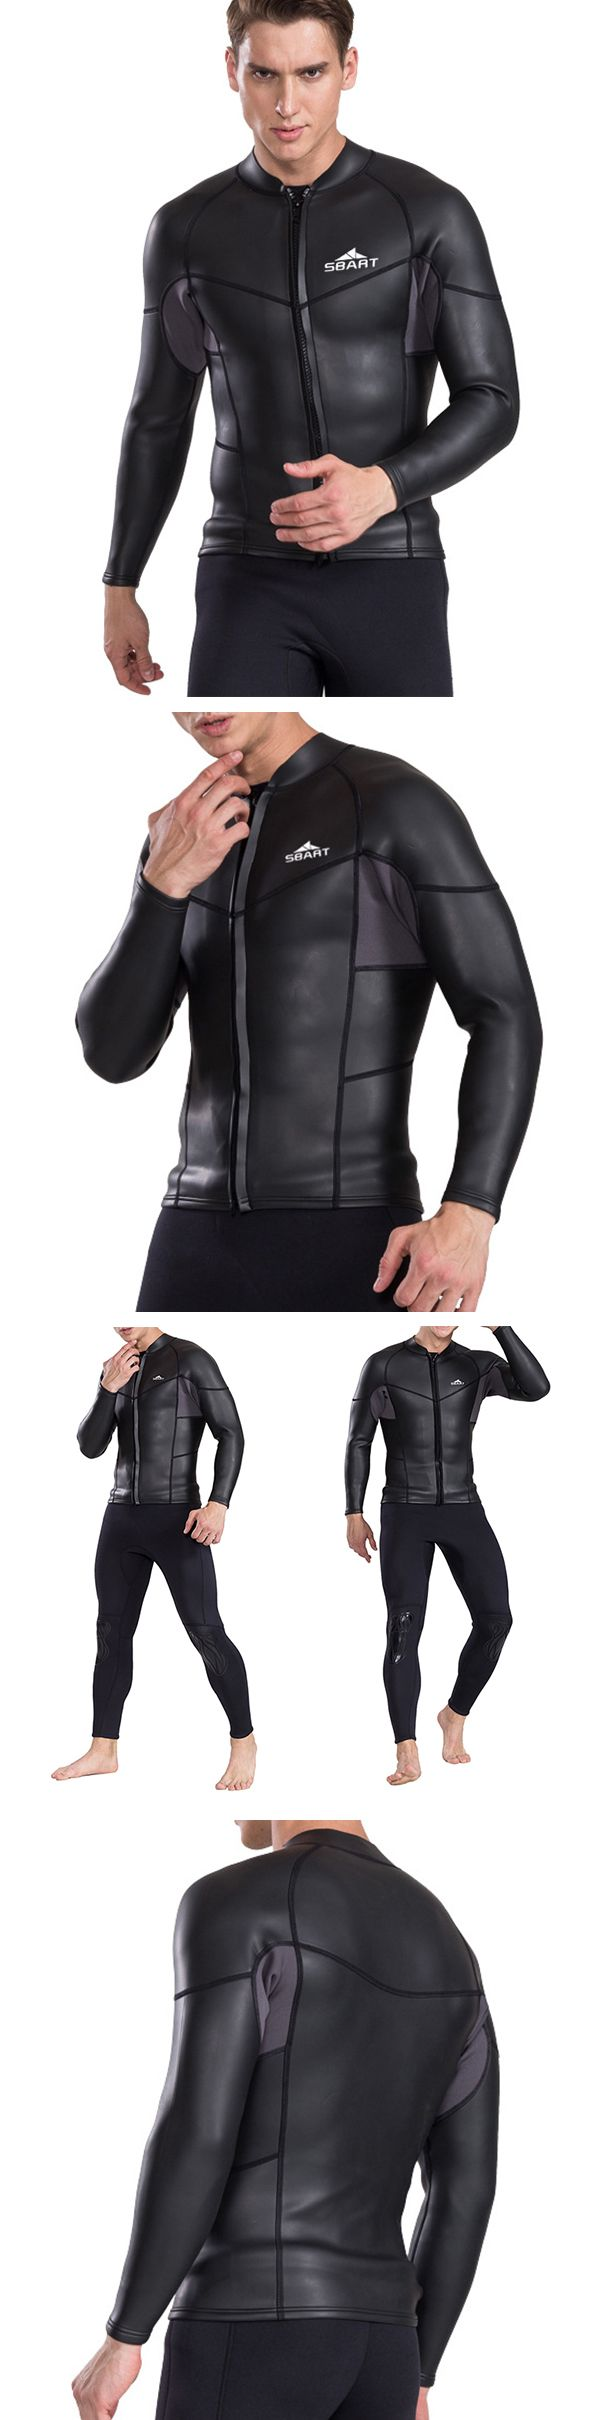 US$42.66 (50% OFF) Black Quickly Dry Thermal Diving Surf Jellyfish Suit for Men